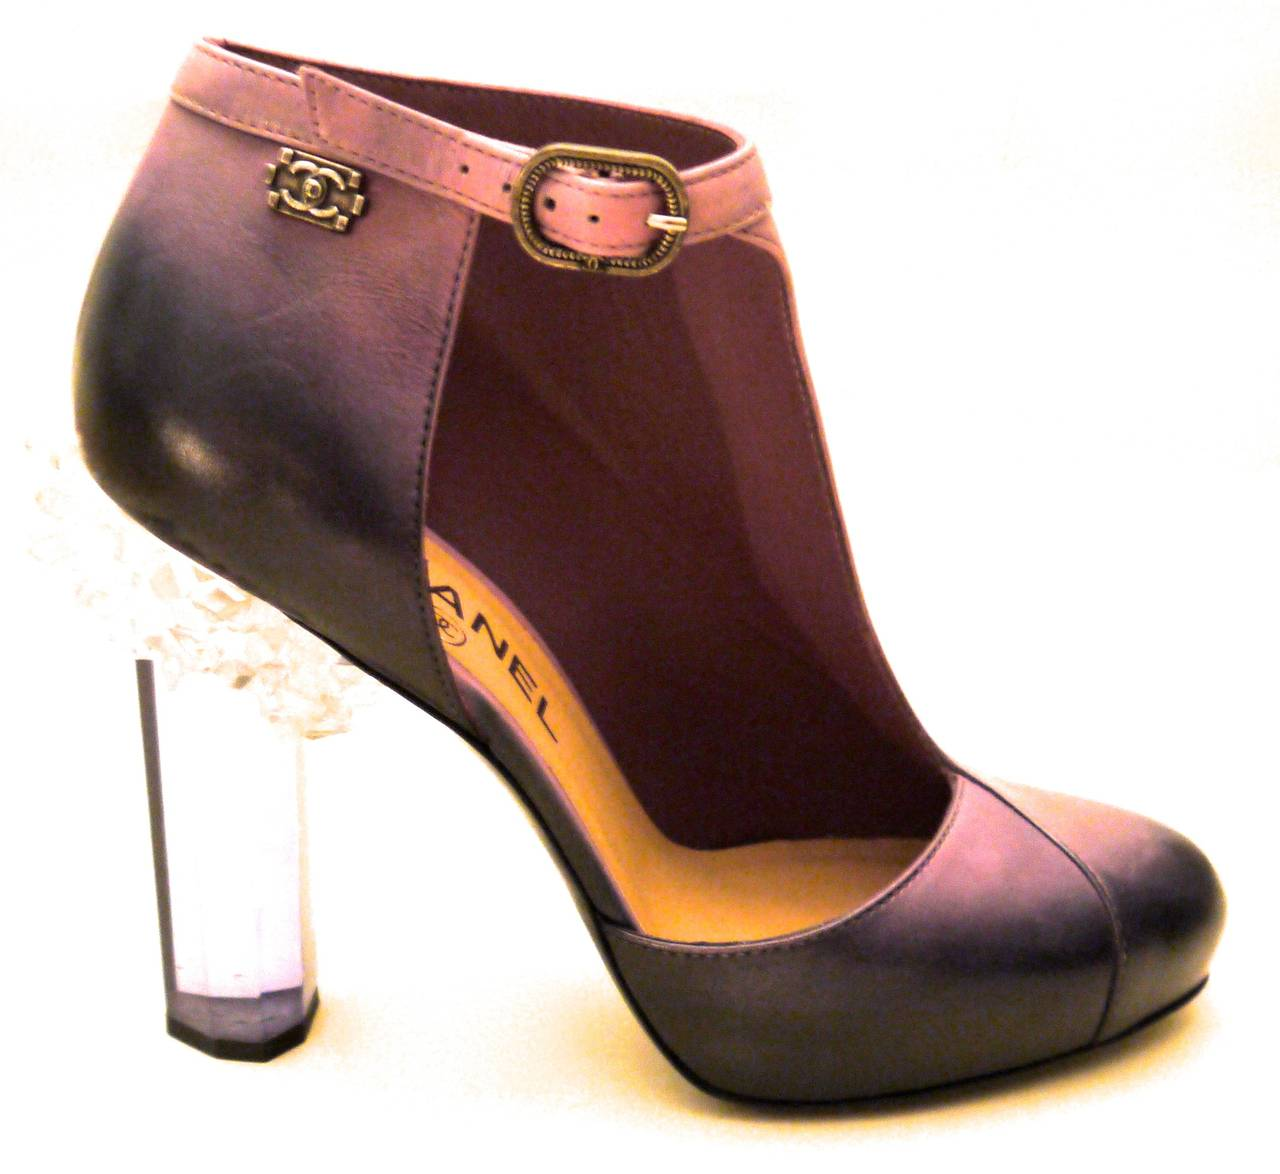 Rare Chanel Runway Boots - Purple and Black - Lucite Heels - Size 37.5 In New Never_worn Condition For Sale In Boca Raton, FL